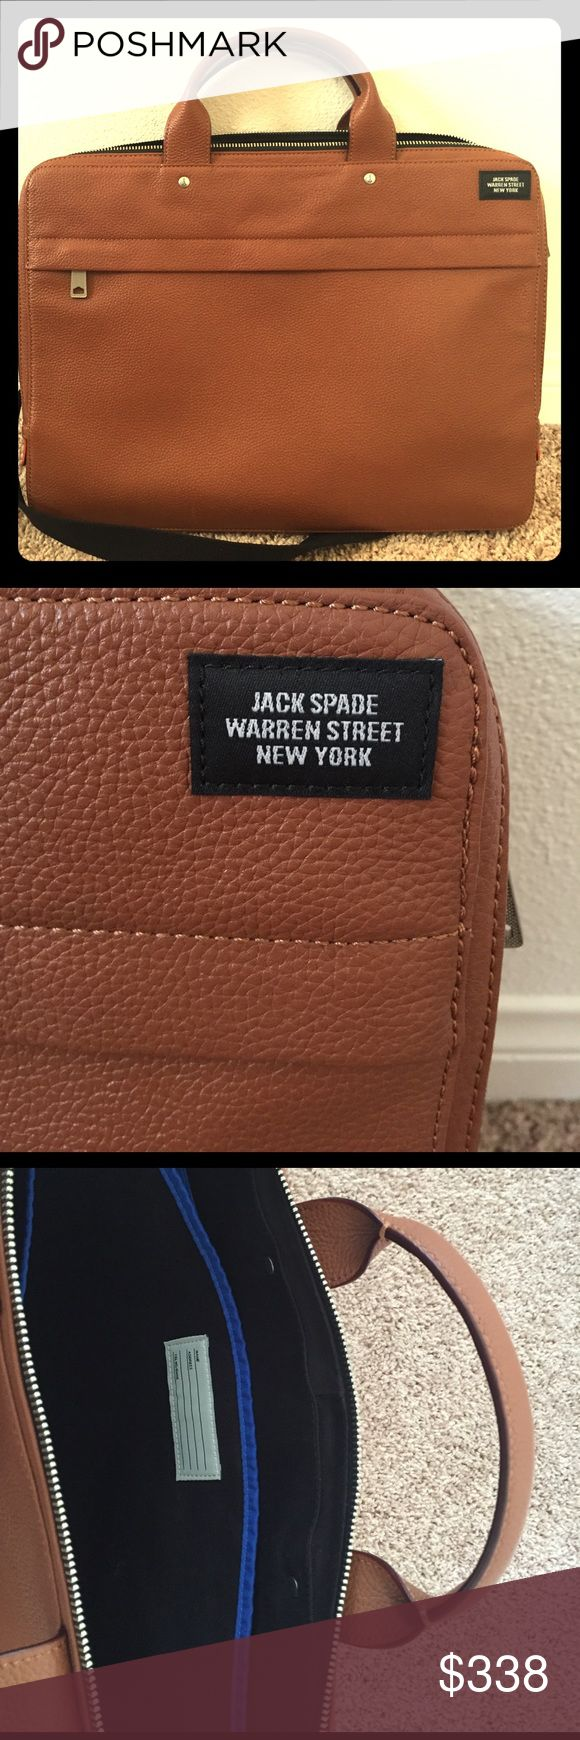 JACK SPADE Mason leather slim briefcase Brand new never been used JACK SPADE mason leather slim briefcase with black strap. Jack Spade Bags Briefcases